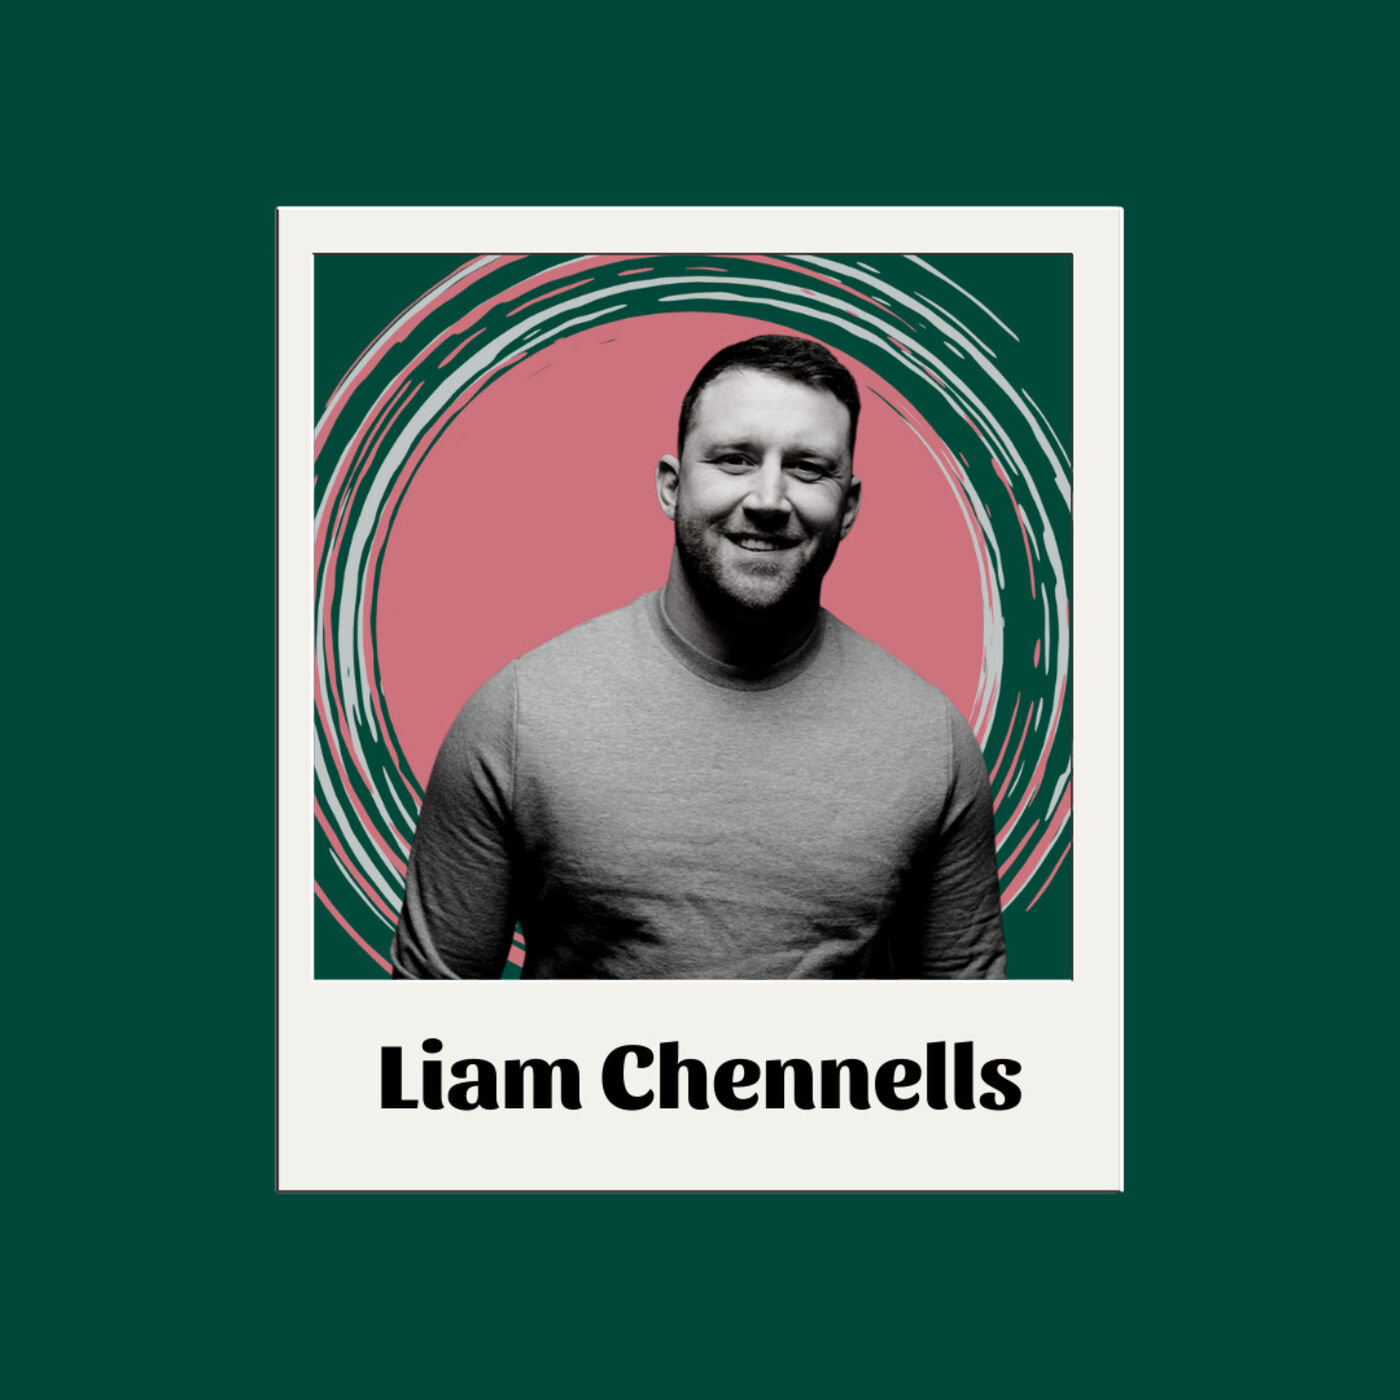 EP22 Liam Chennells - Working towards who you want to be